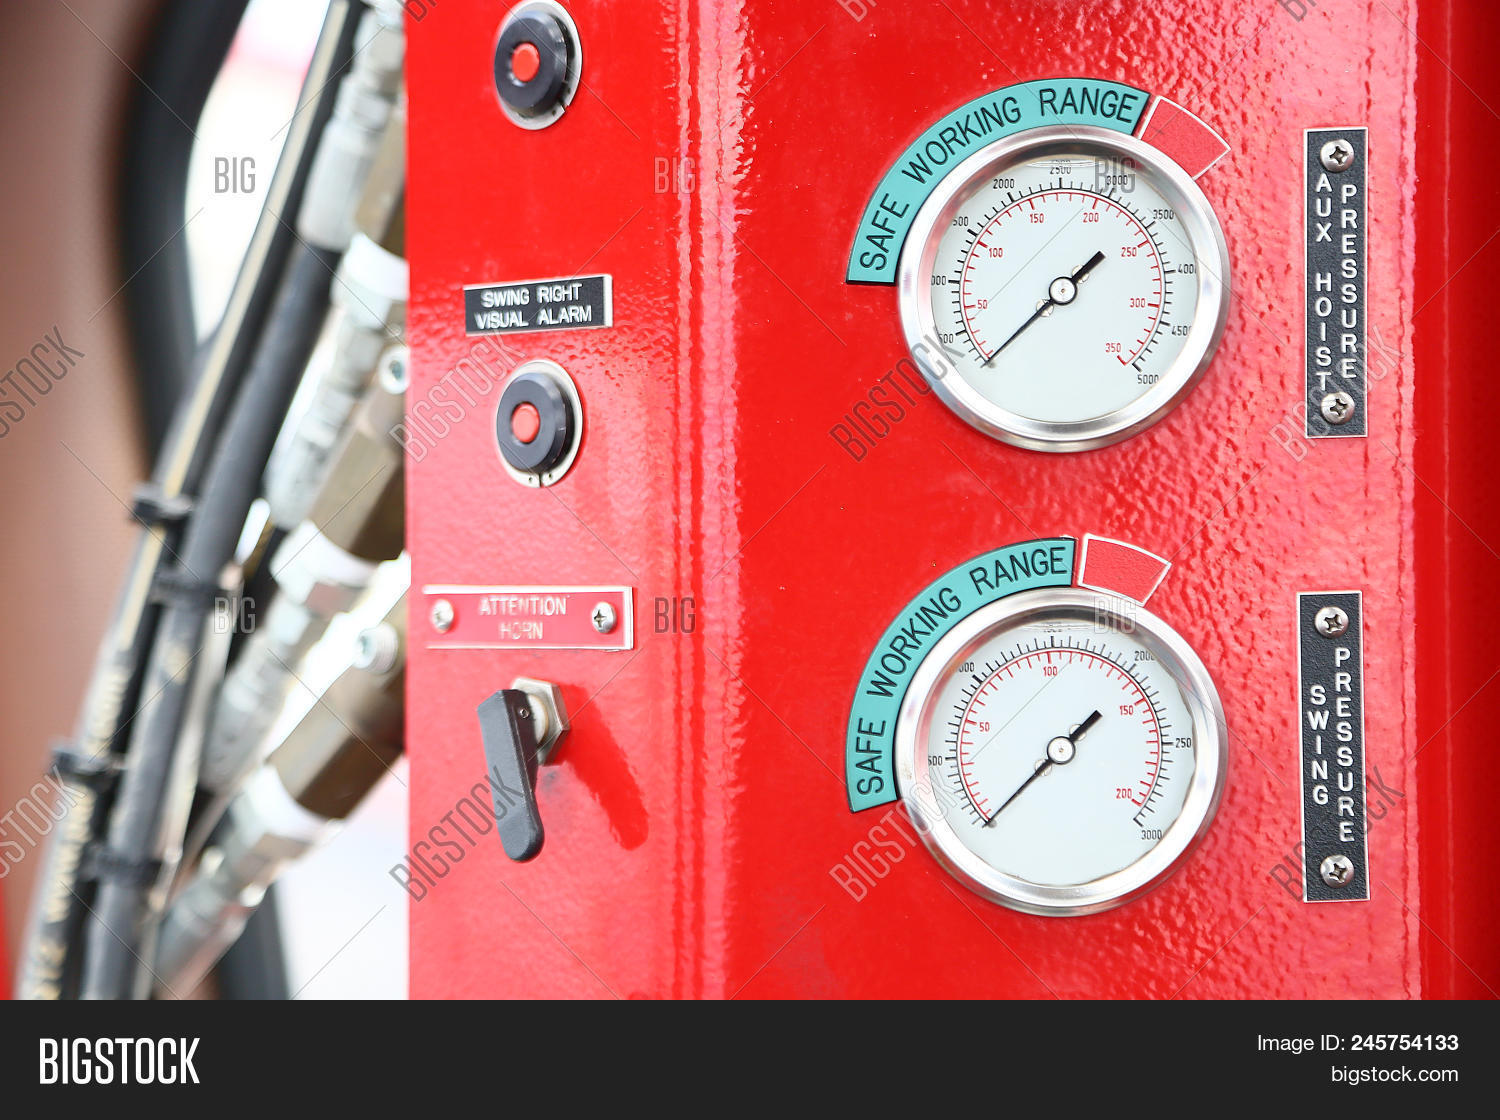 adjust,air,boiler,calibrate,calibration,comman,control,dial,display,energy,engineering,equipment,function,gas,gauge,hydraulic,indicator,industrial,industry,instrument,limit,machine,macro,manometer,measure,measurement,mechanic,metal,meter,offshore,oil,part,perform,pipe,pipeline,plant,power,pressure,process,production,pump,scale,steam,steel,technology,test,tool,valve,vessel,work